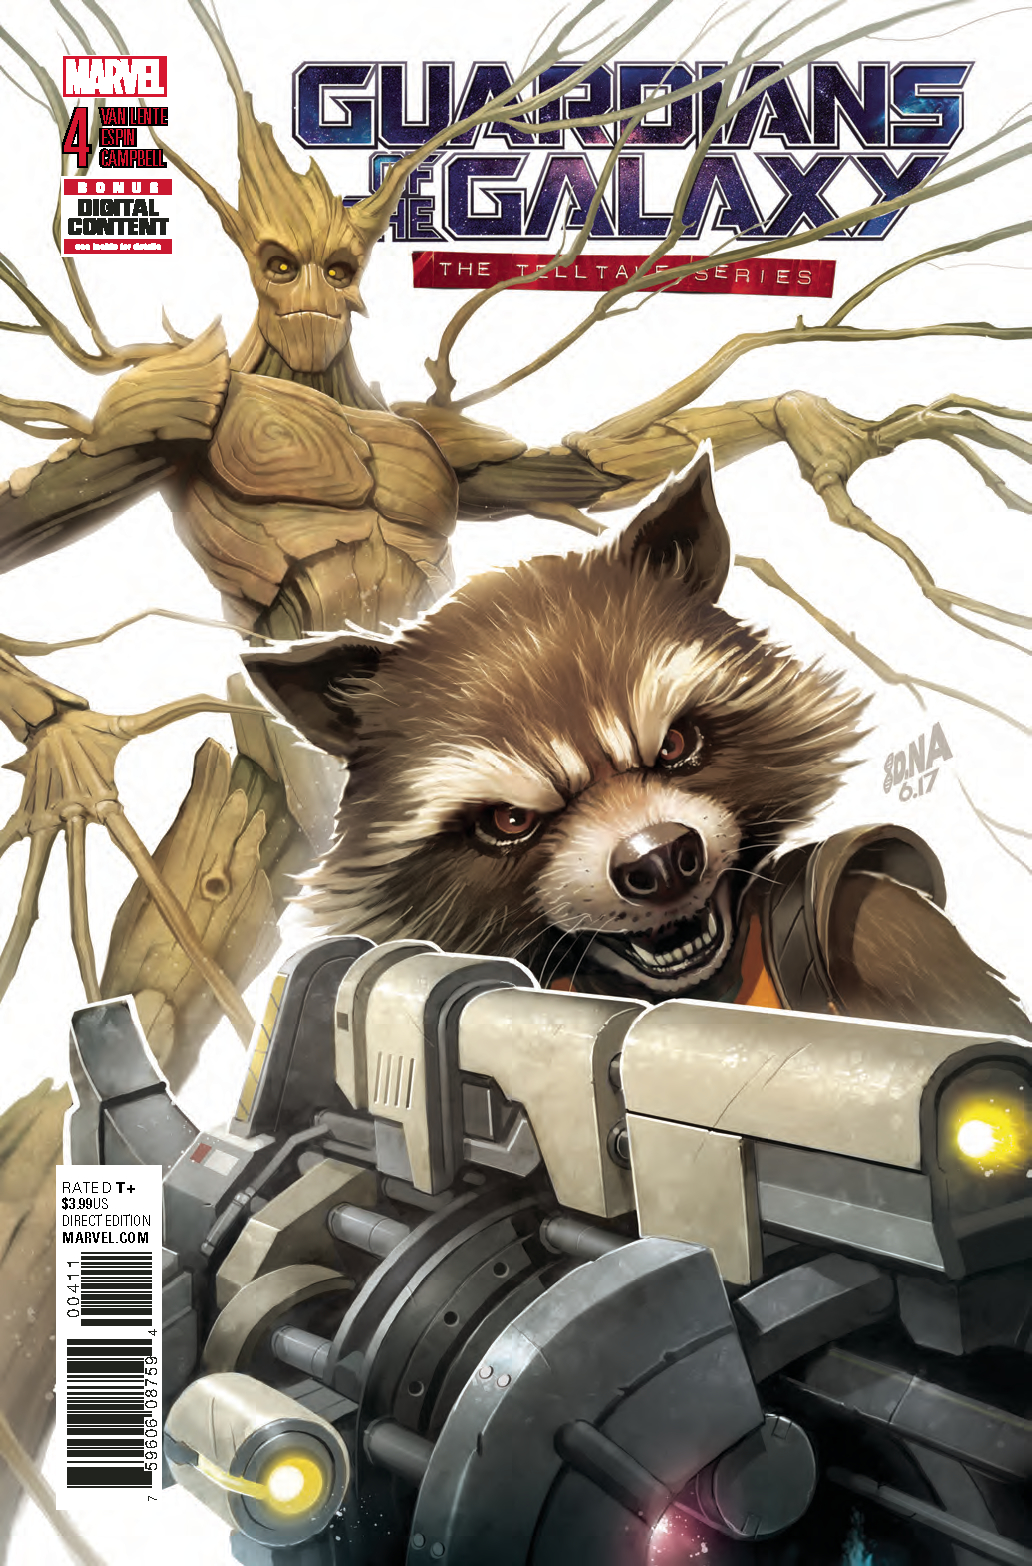 GUARDIANS OF GALAXY TELLTALE SERIES #4 (OF 5)